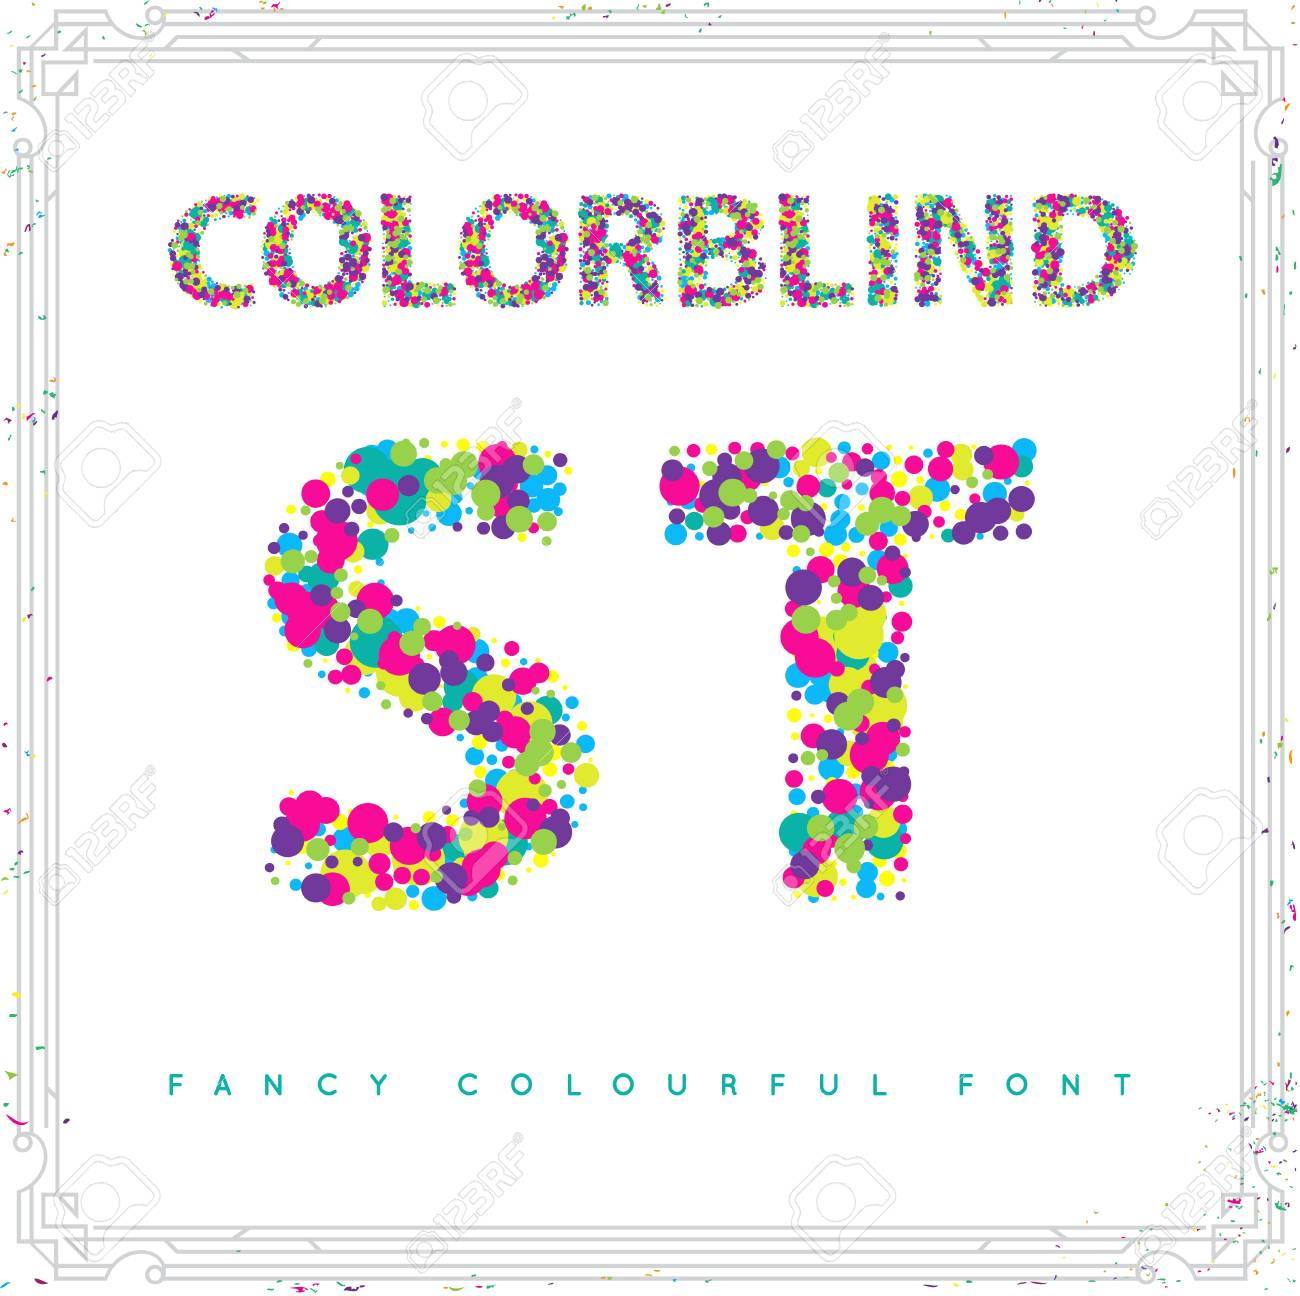 Set of Colorblind Style Font in Vector. Fresh trendy colors. - 63744491